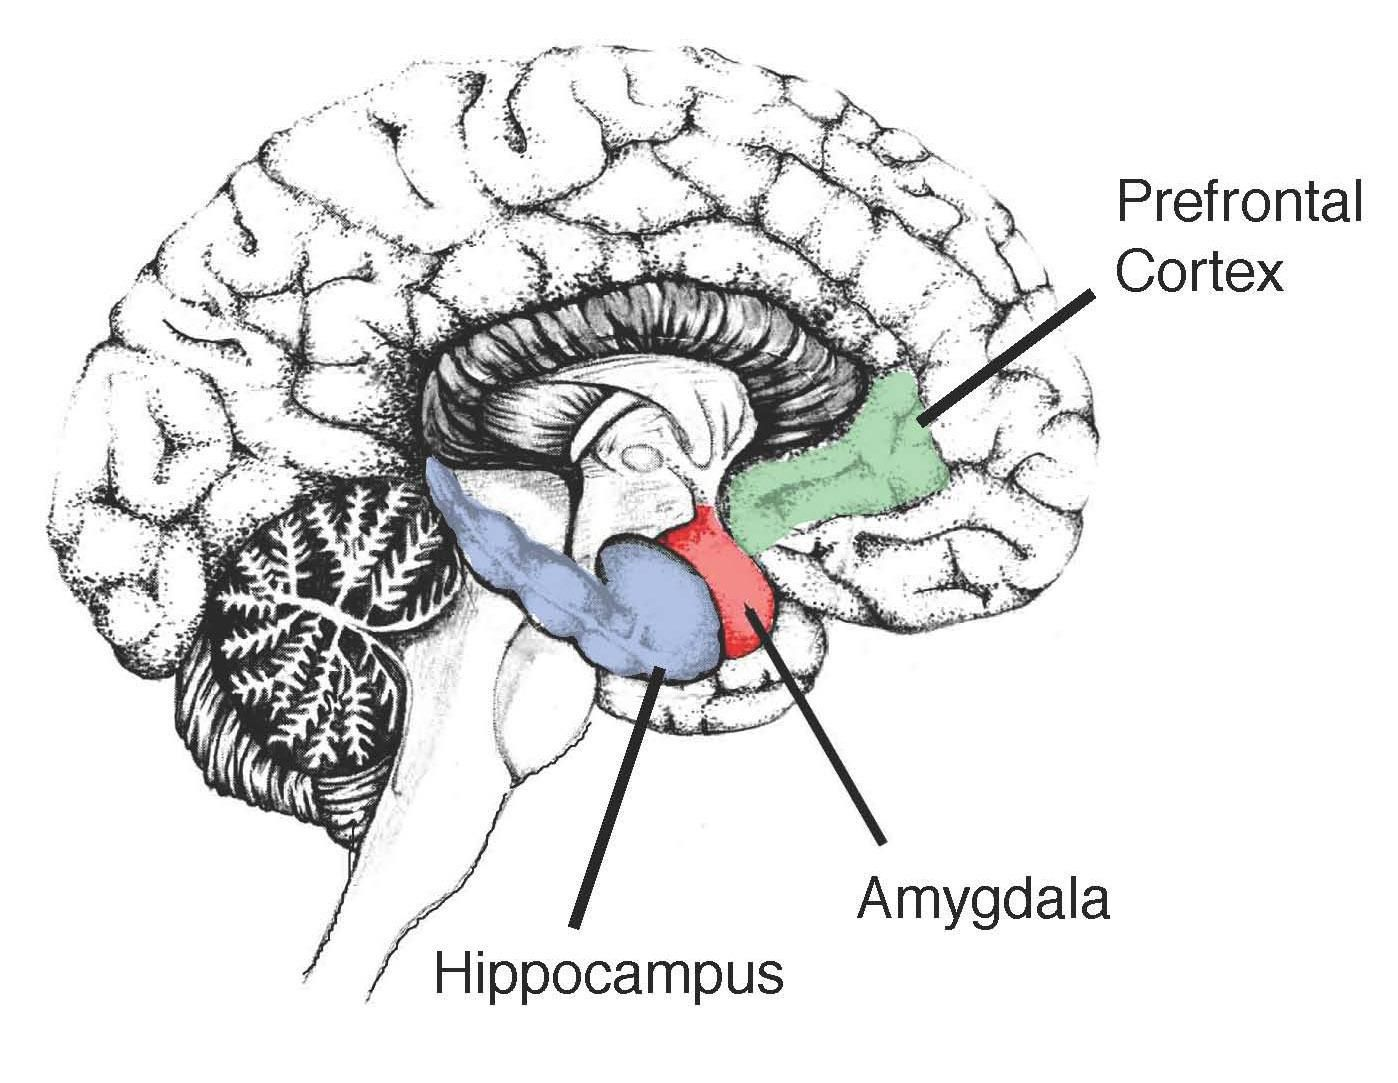 Image showing the hippocampus in the human brain 1441949b8610d5a344b image showing the hippocampus in the human brain 1441949b8610d5a344b ccuart Gallery